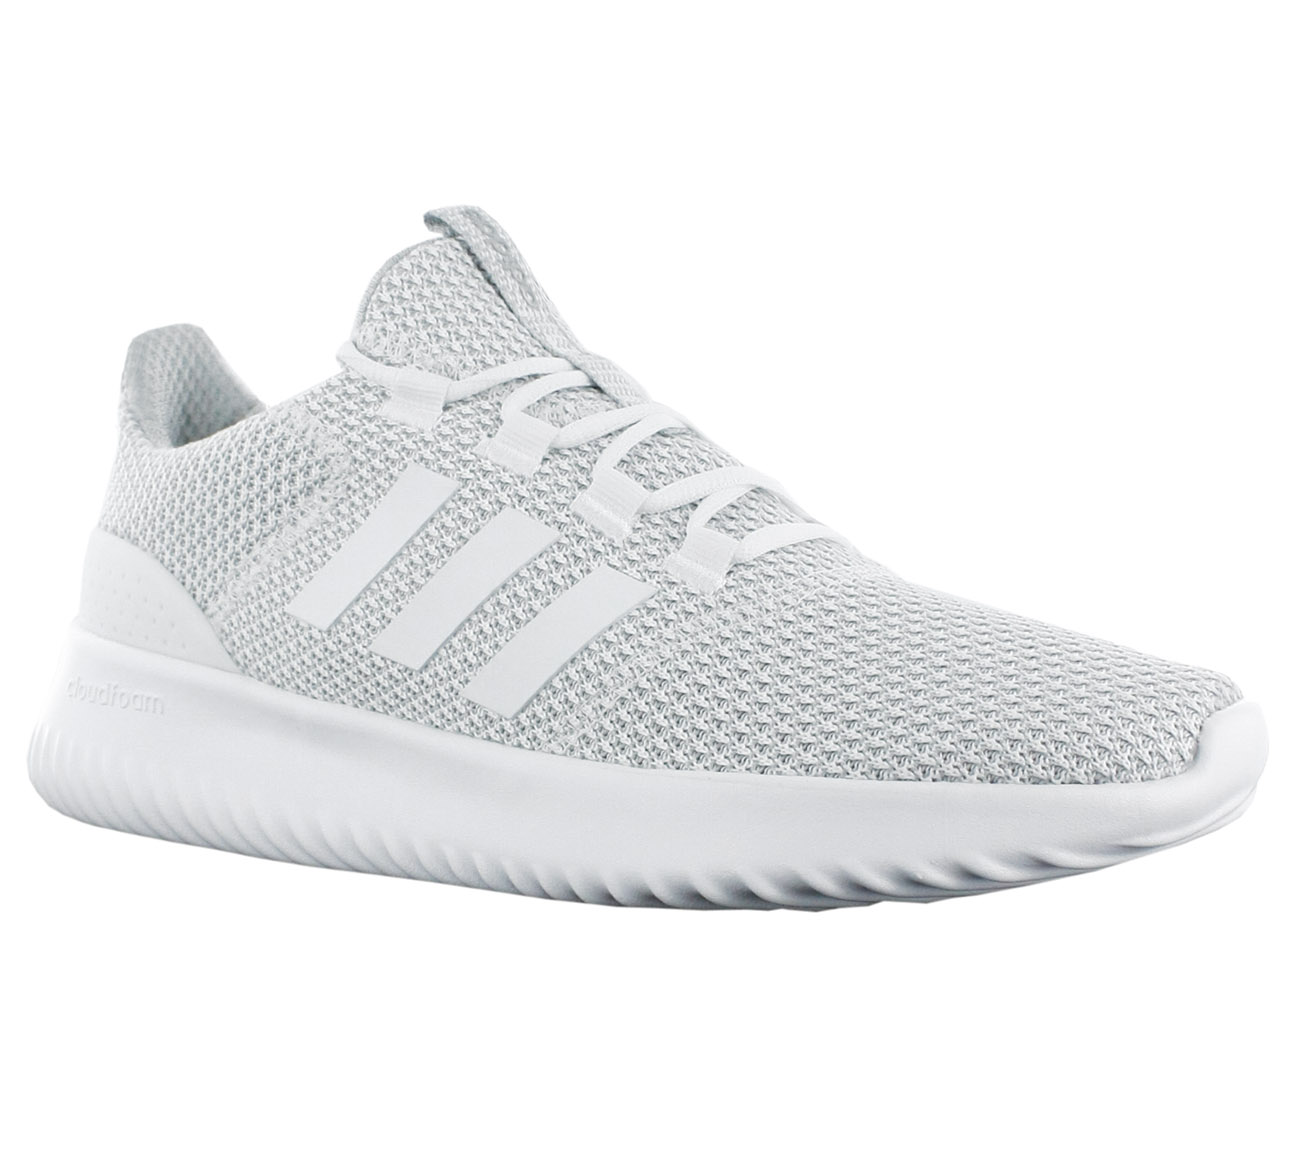 a82de23ff75d NEW adidas Cloudfoam Ultimate BC0121 Men  s Shoes Trainers Sneakers ...